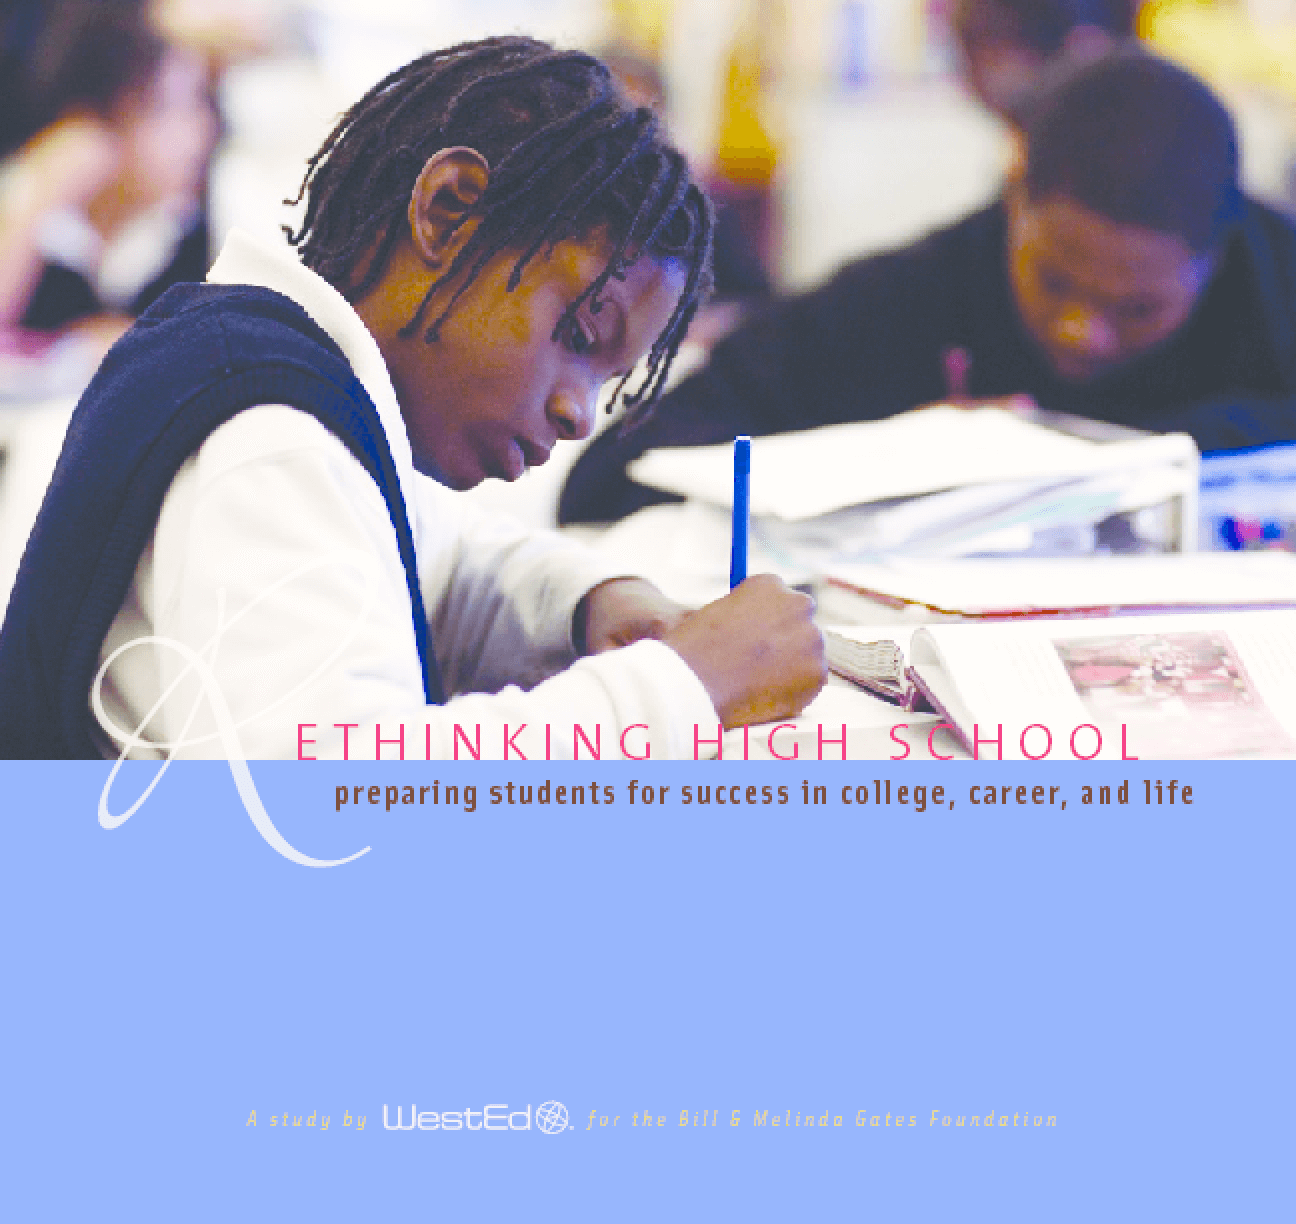 Rethinking High School: Preparing Students for Success in College, Career, and Life